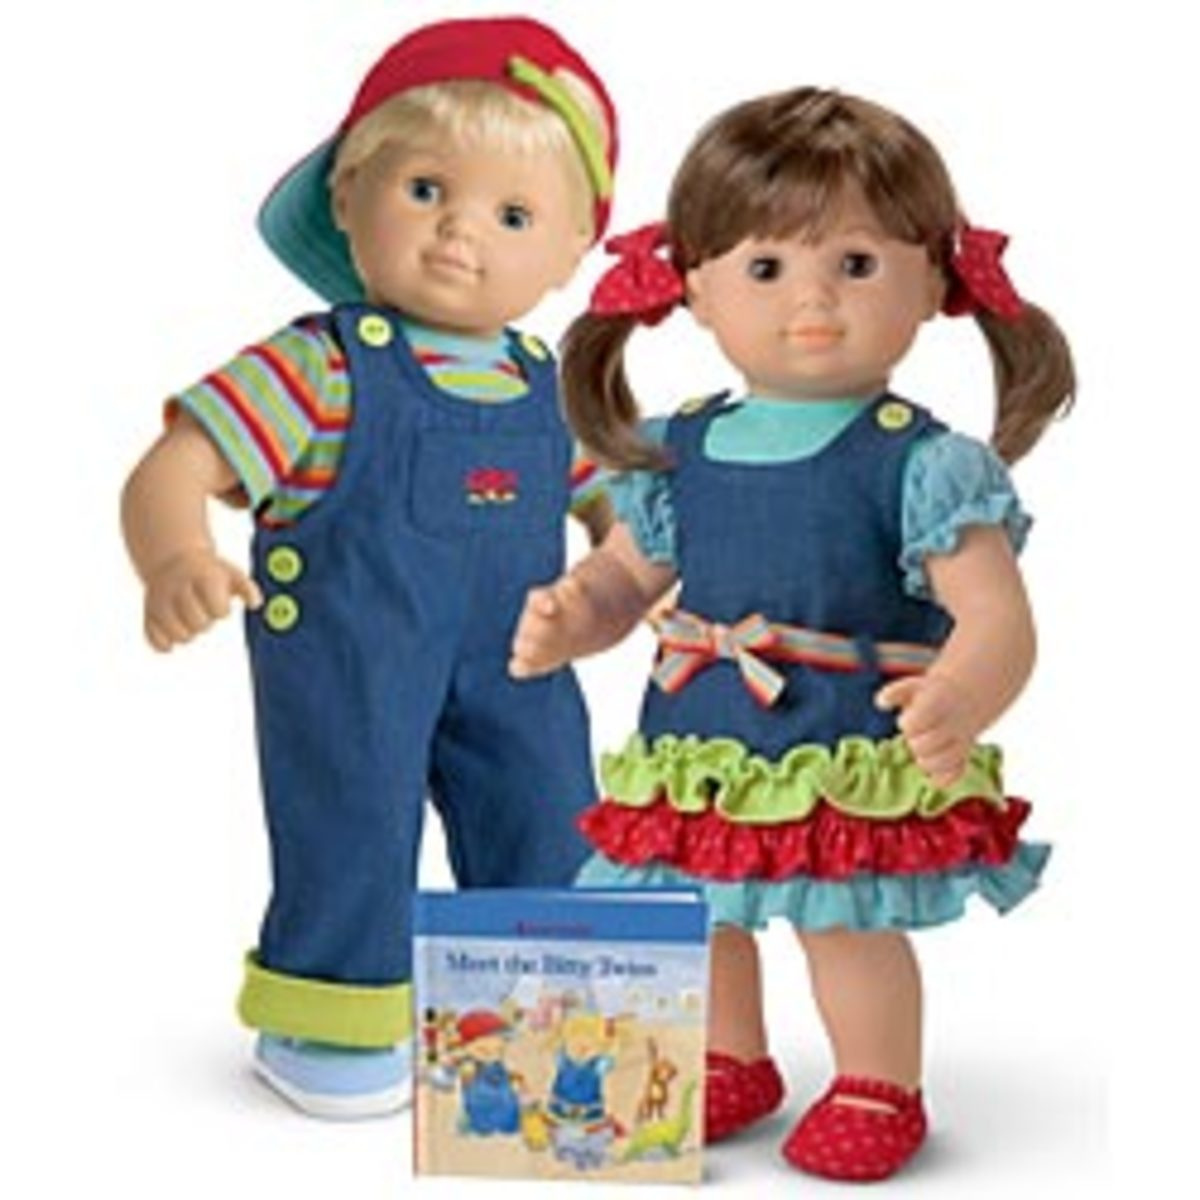 American Girl Dolls - Twins (girl boy)Many options available